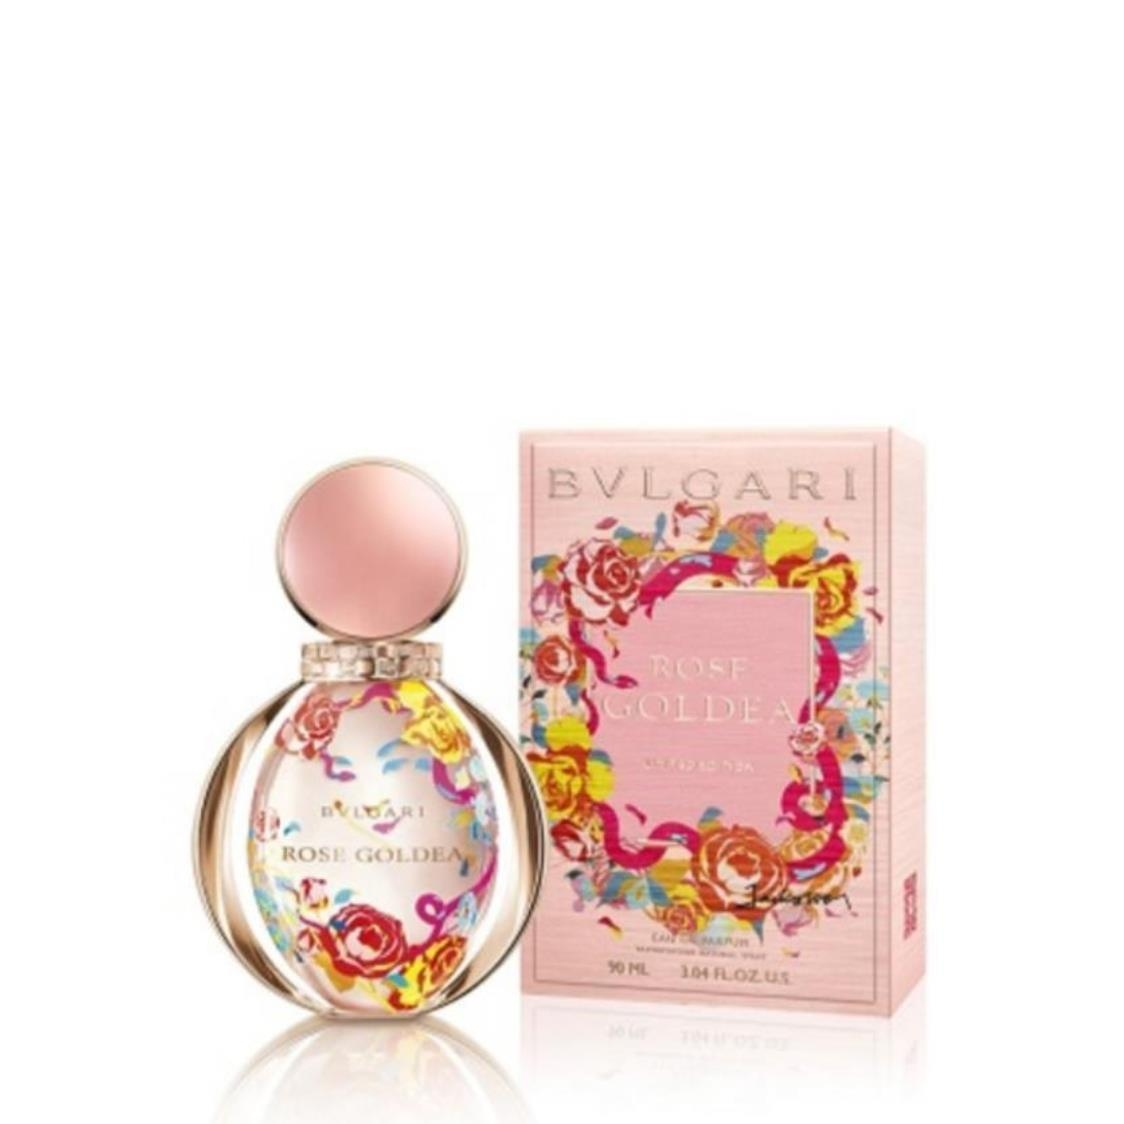 Bvlgari Rose Goldea Limited Edition